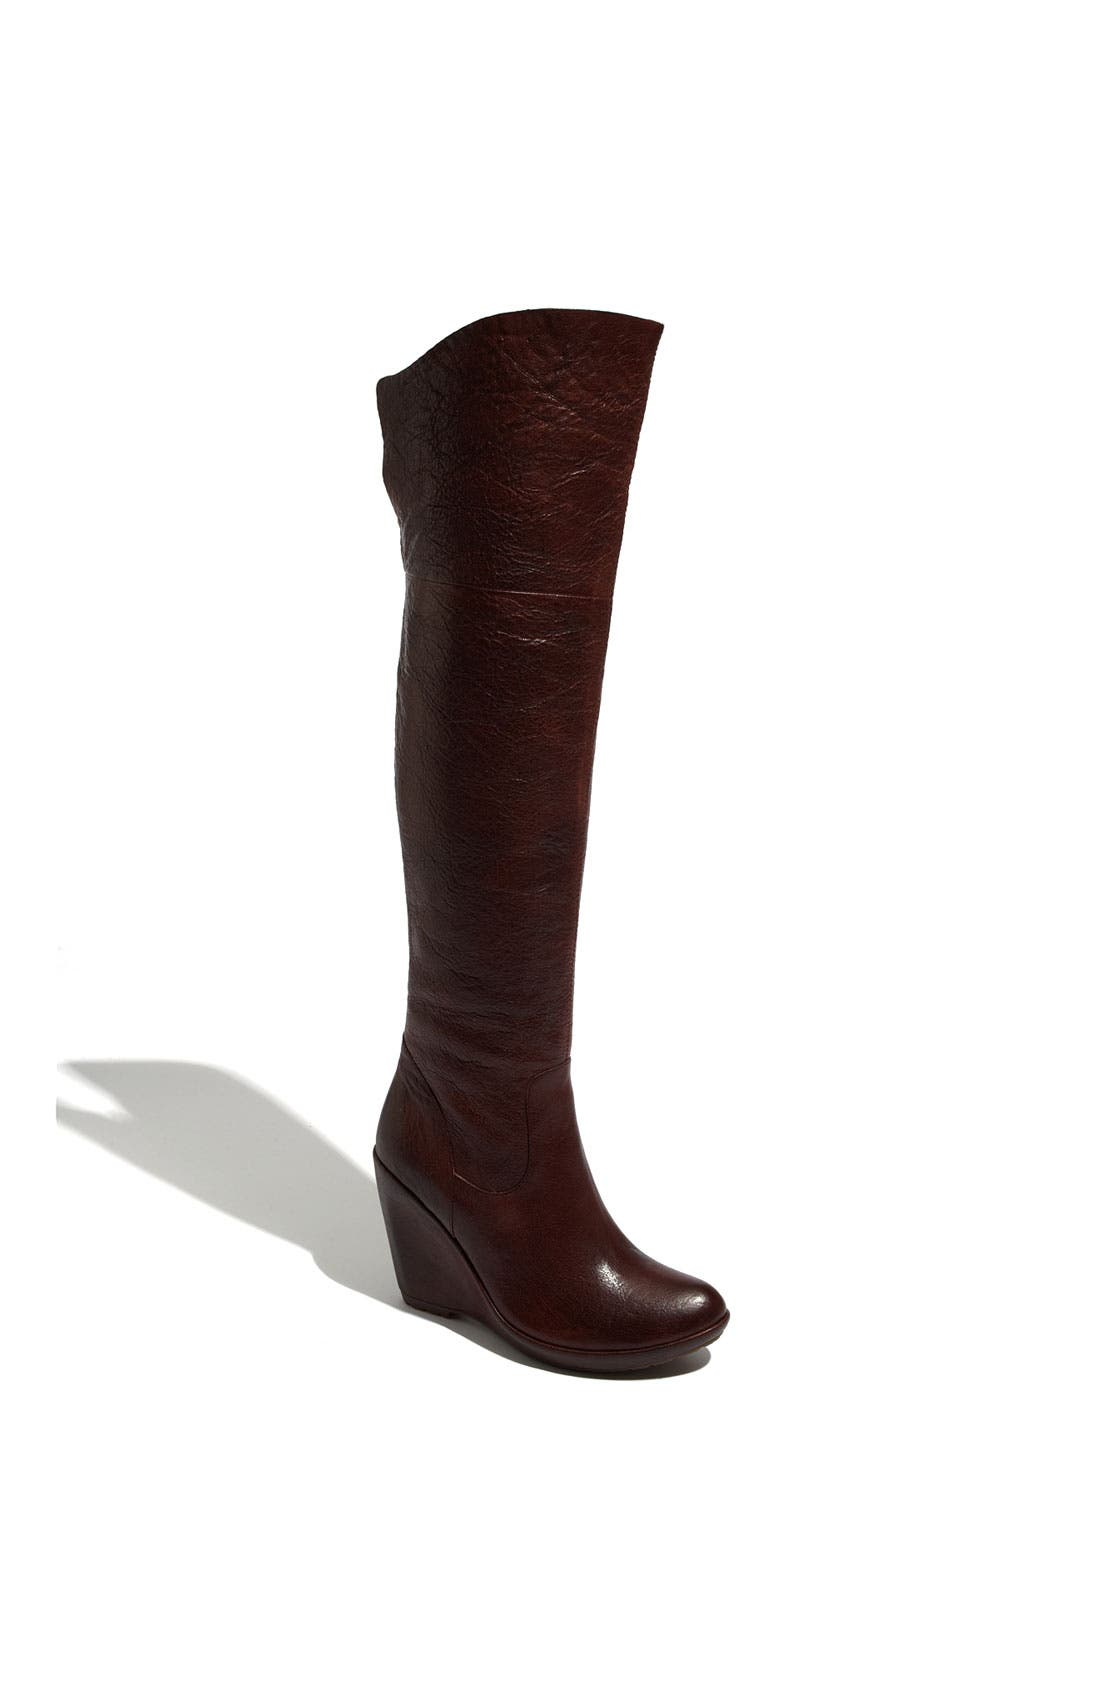 Main Image - Kork-Ease 'Adrianne' Over the Knee Boot